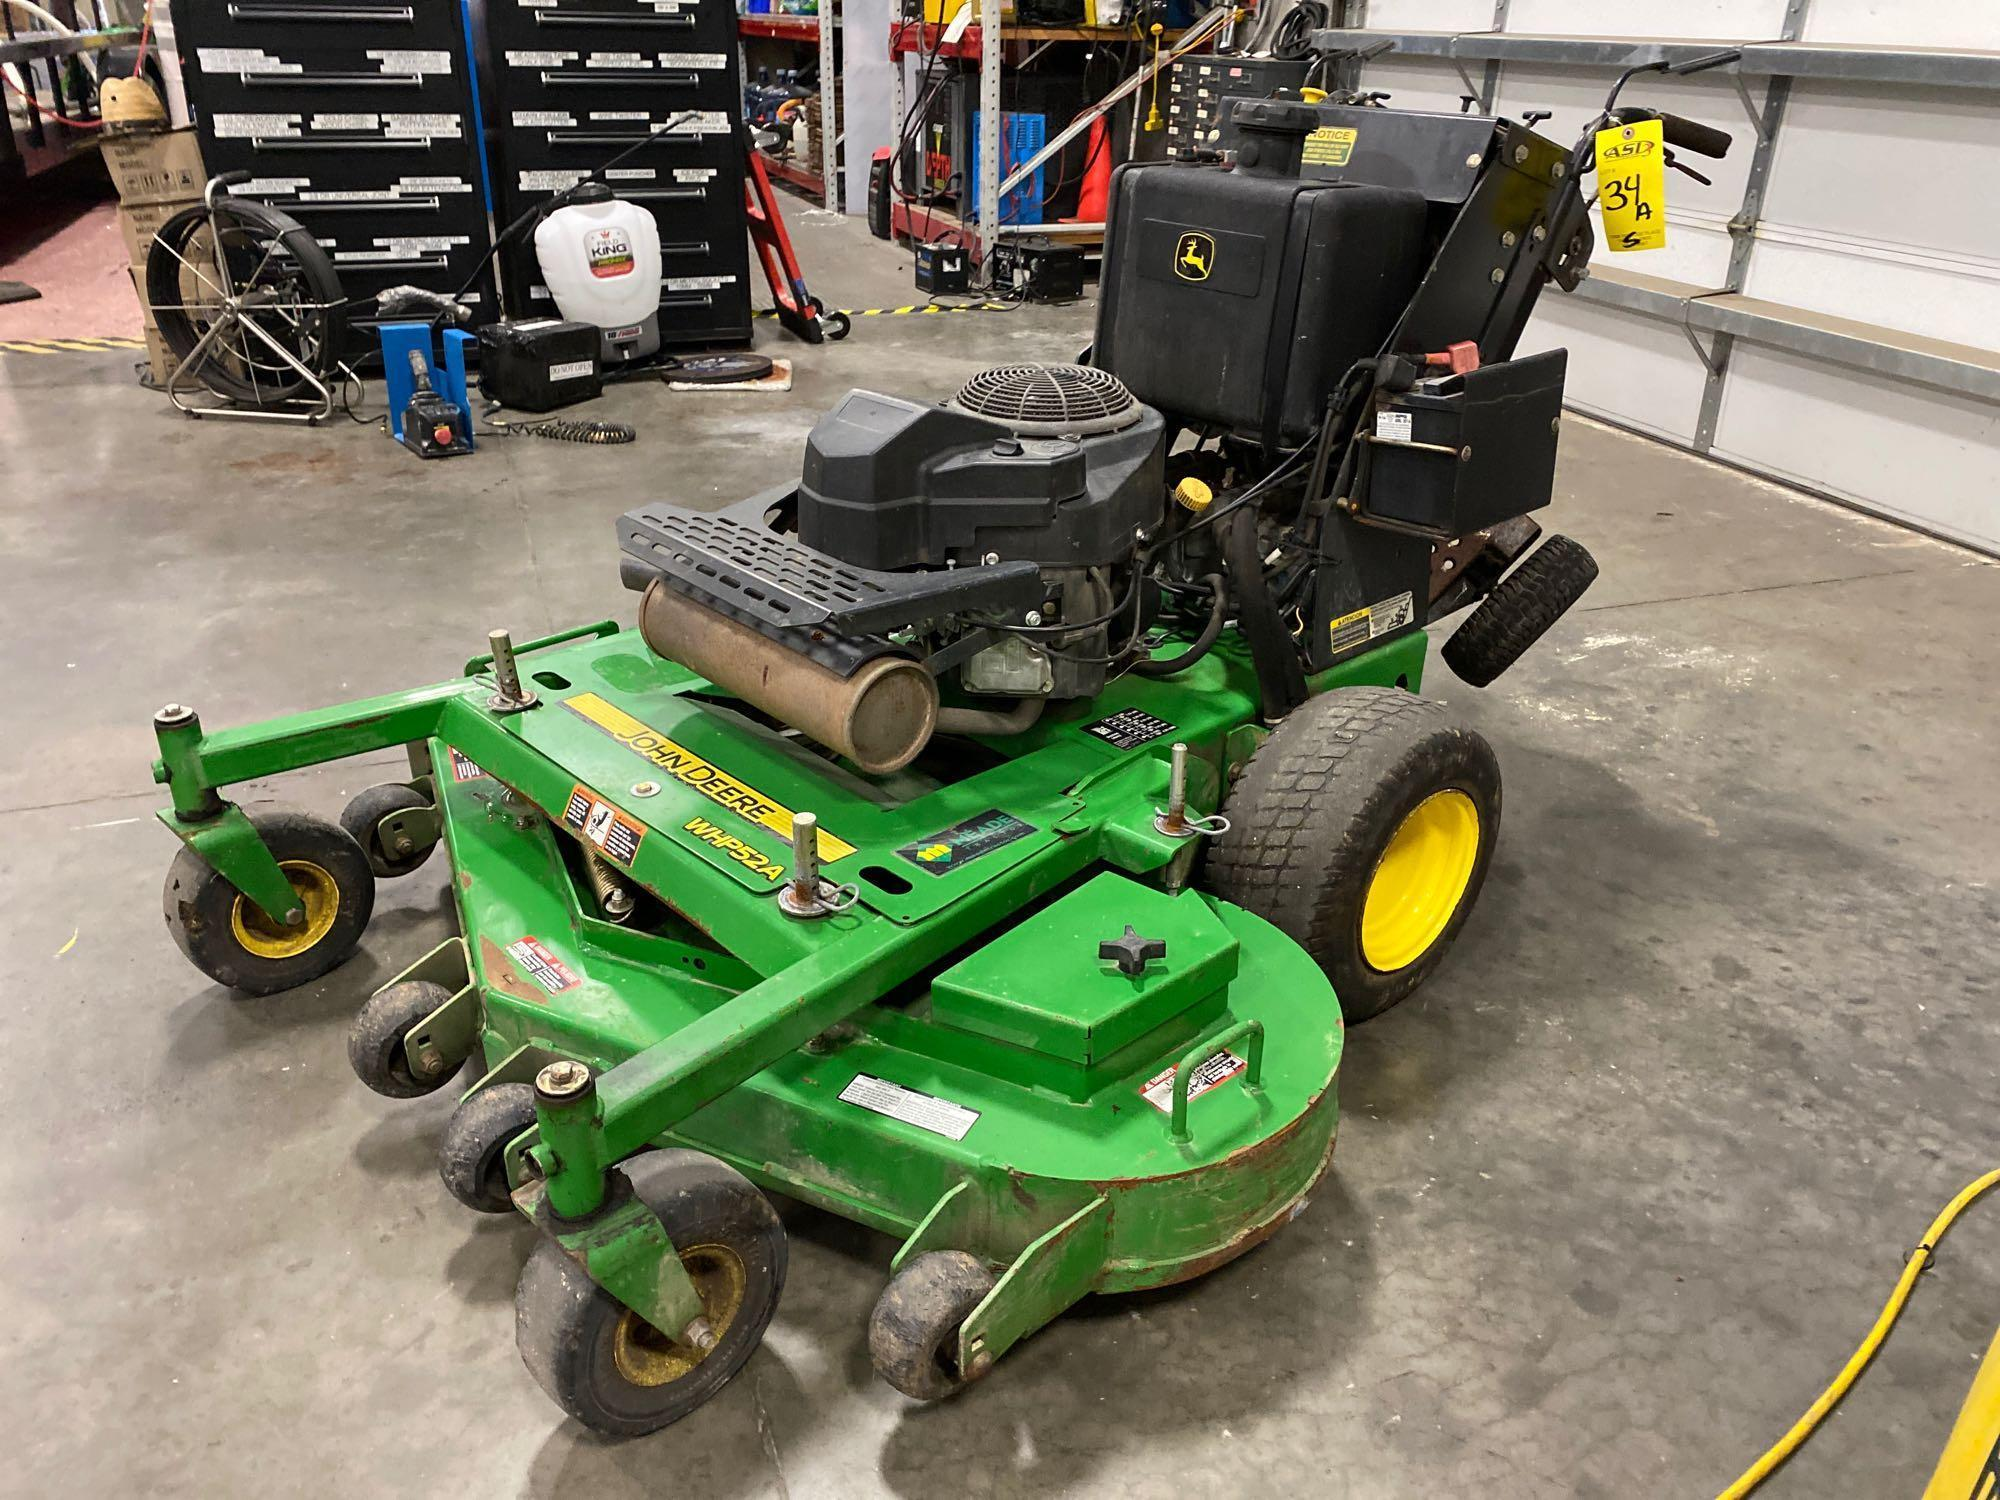 "JOHN DEERE MOWER JOHN DEERE WHP52A MOWER, 52"" DECK, RUNS AND OPERATES - Image 2 of 7"